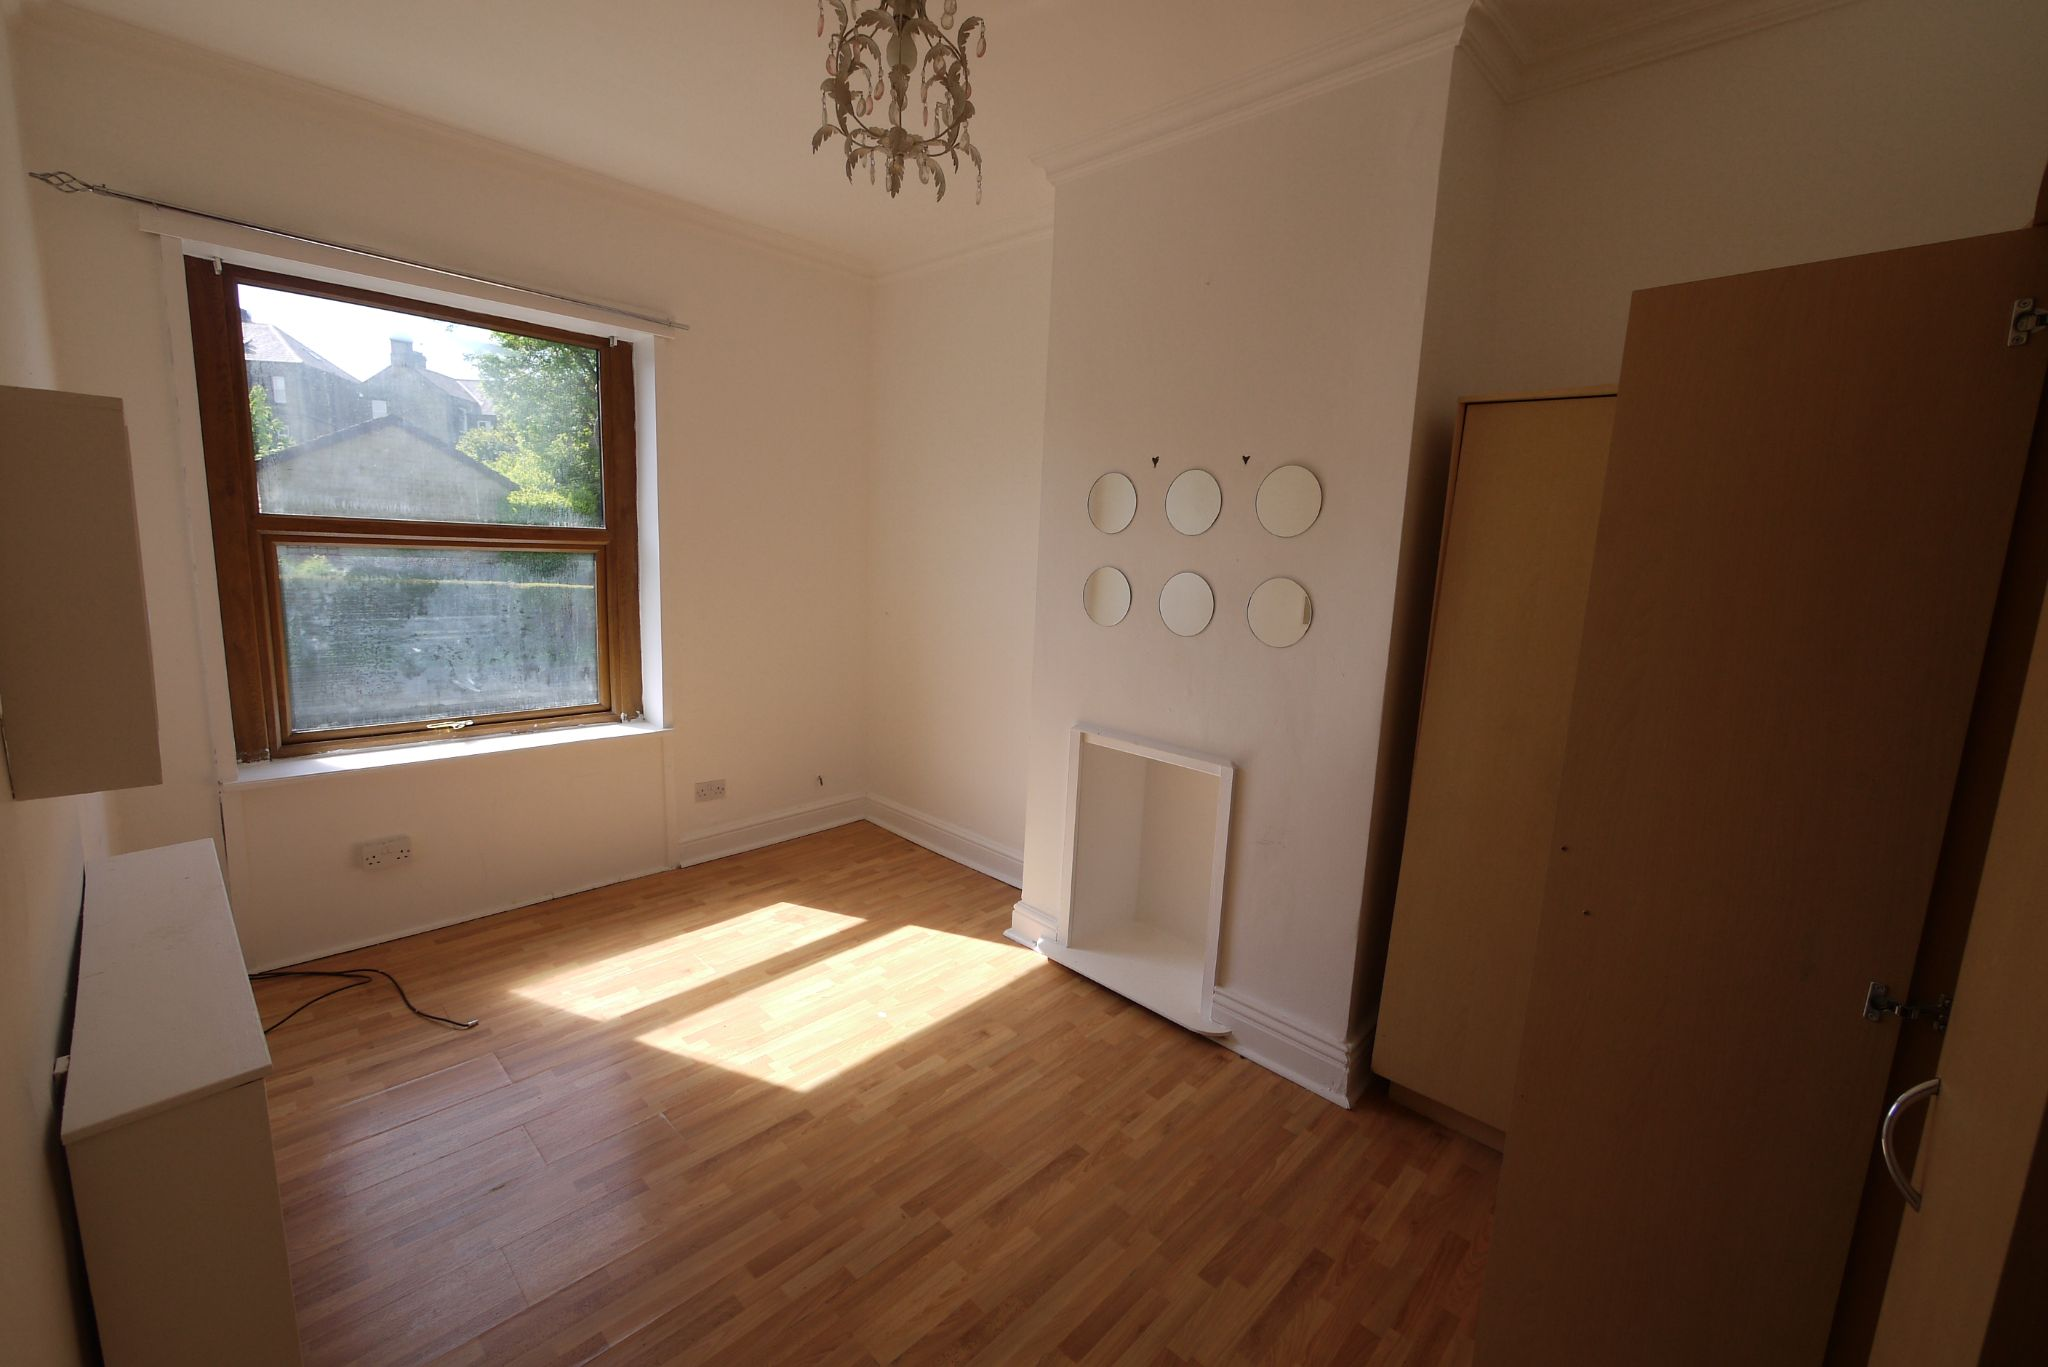 3 bedroom mid terraced house SSTC in Bradford - Photograph 12.